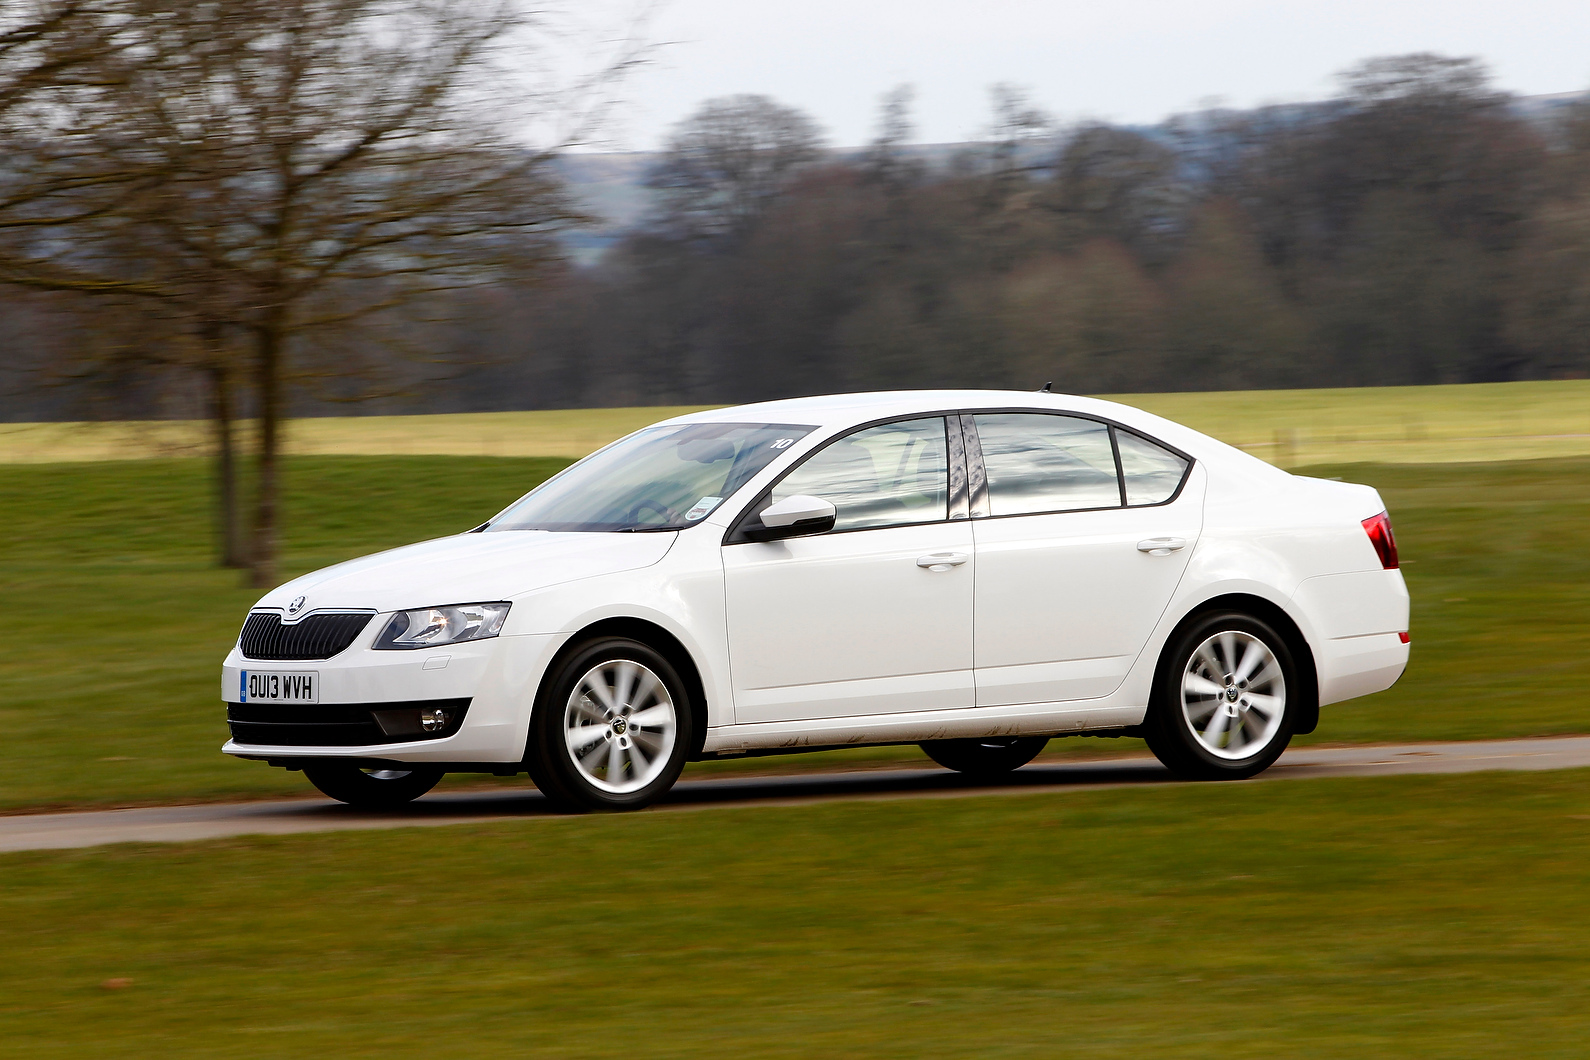 skoda octavia 20 tdi first drive review review autocar. Black Bedroom Furniture Sets. Home Design Ideas